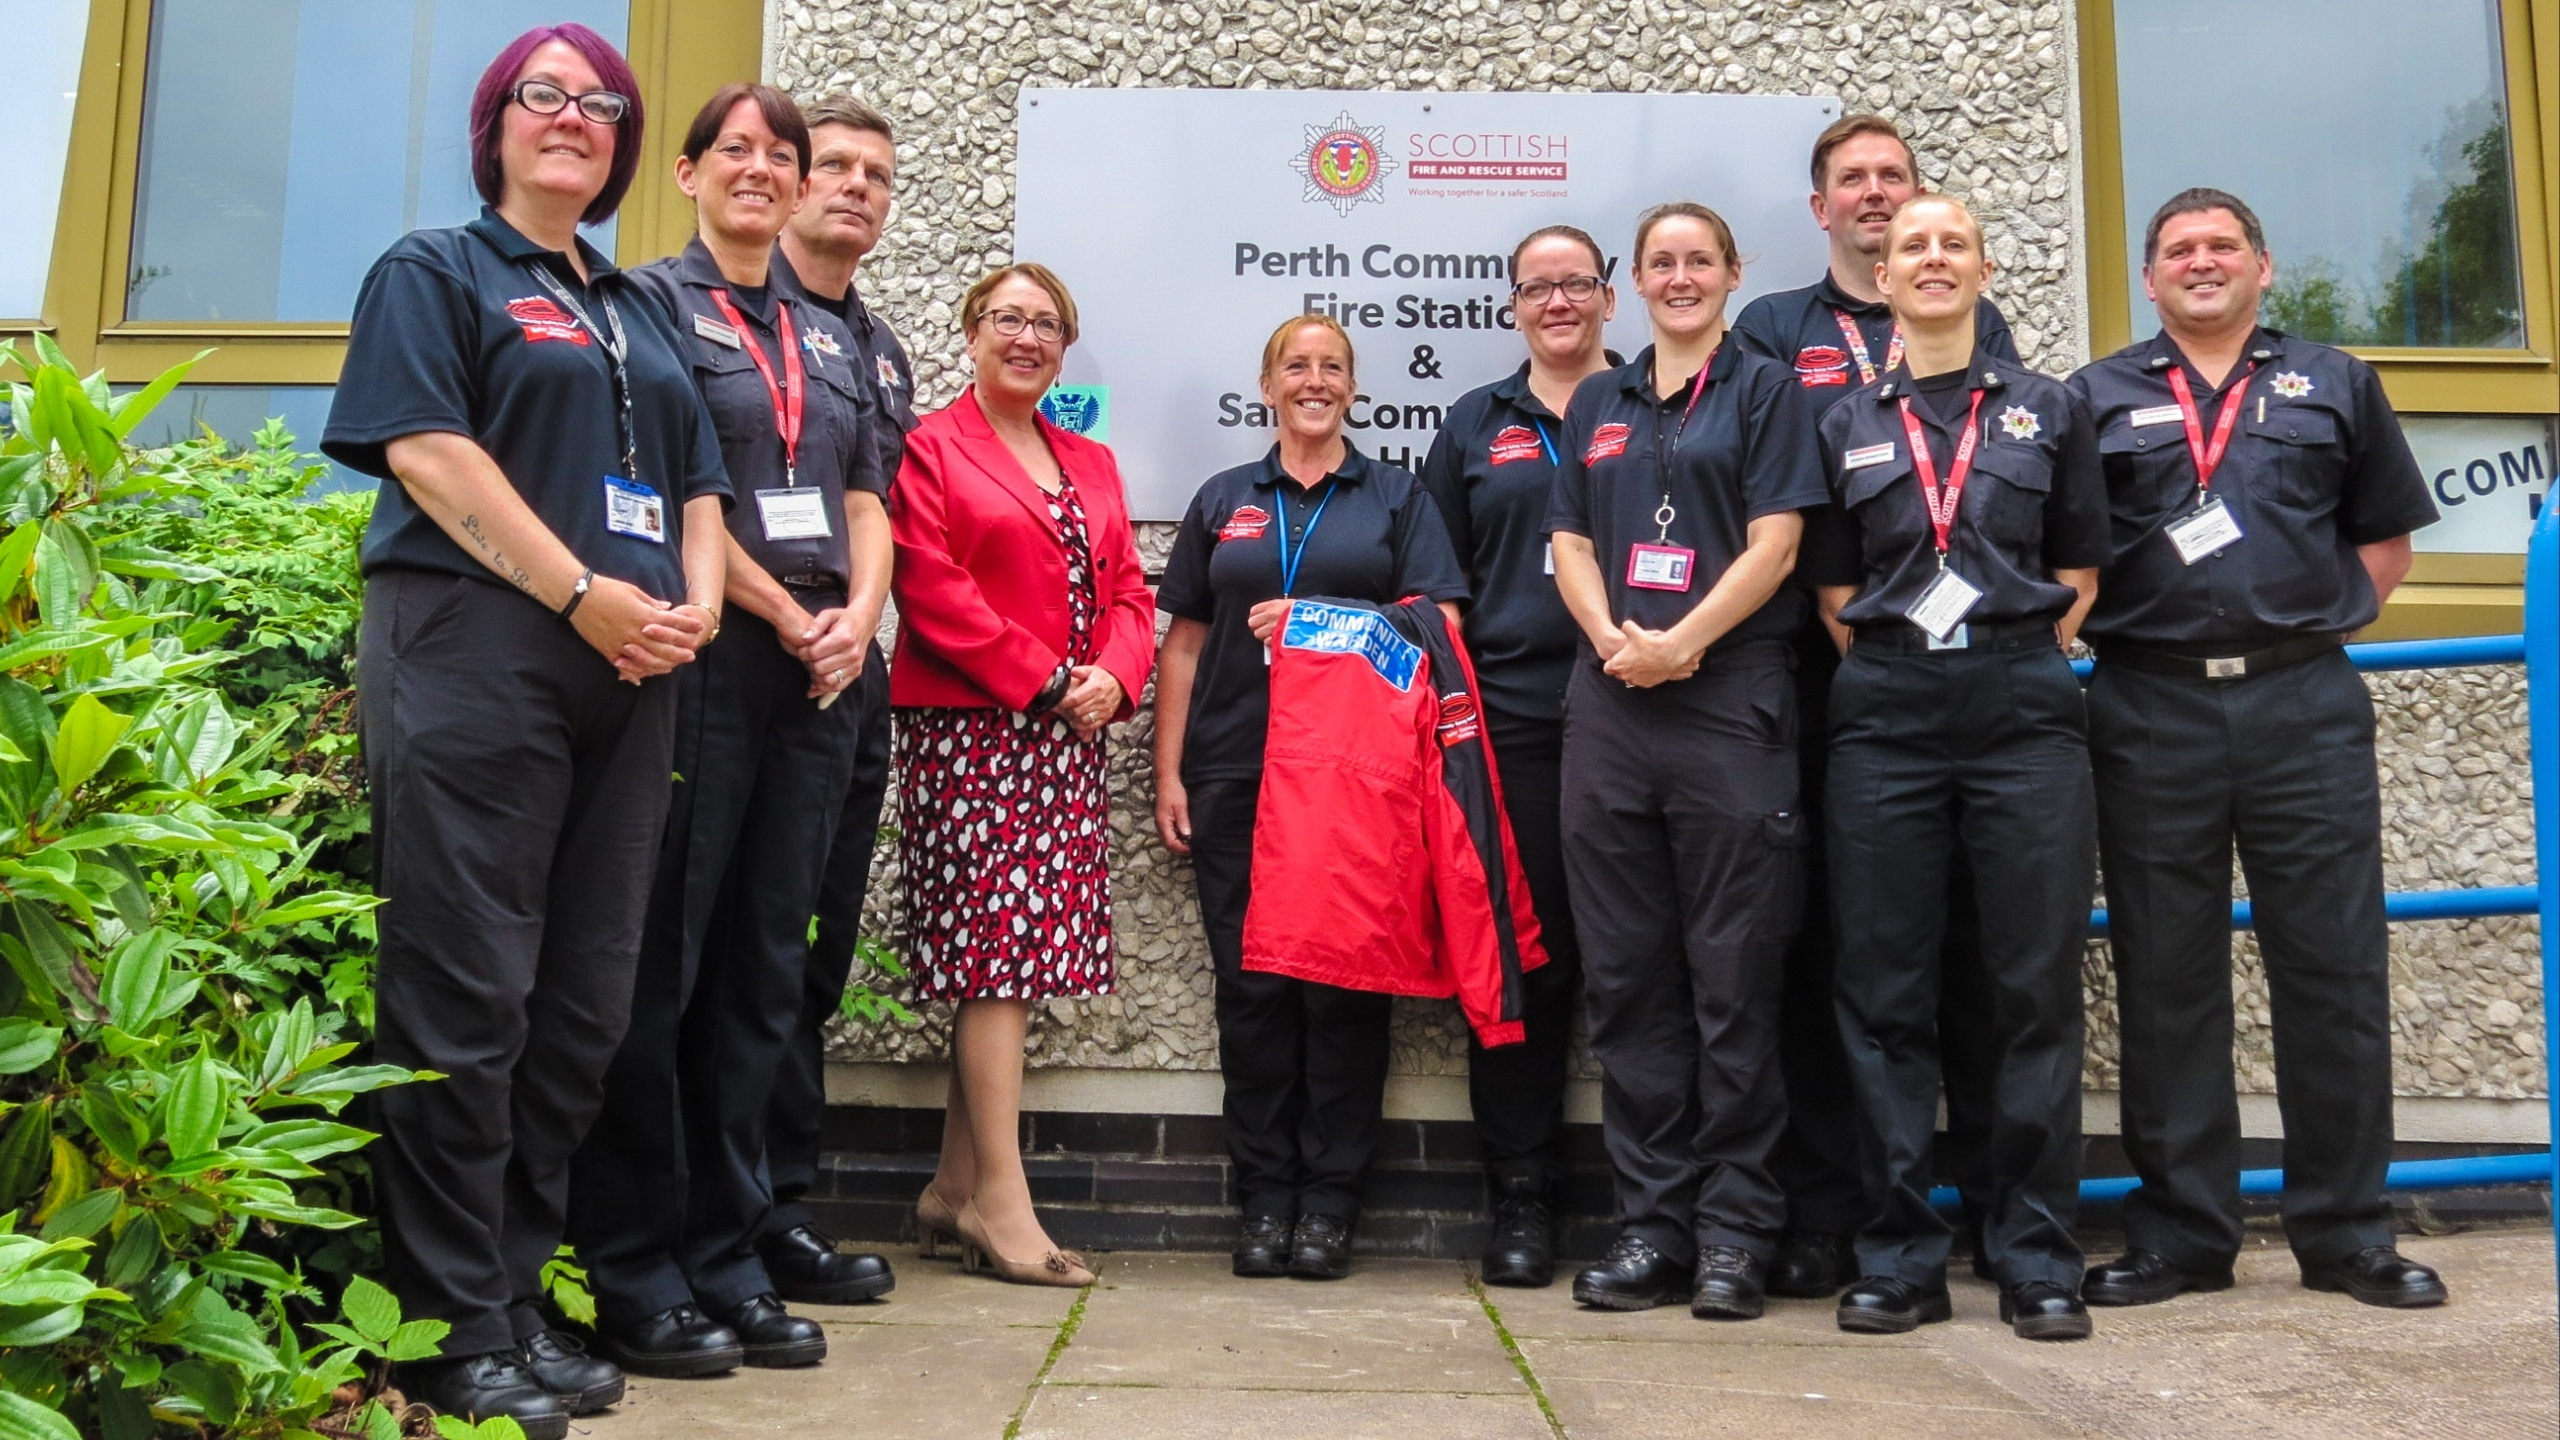 Community Safety Minister Annabelle Ewing meets community safety wardens and firefighters at Perth Community Fire Station.